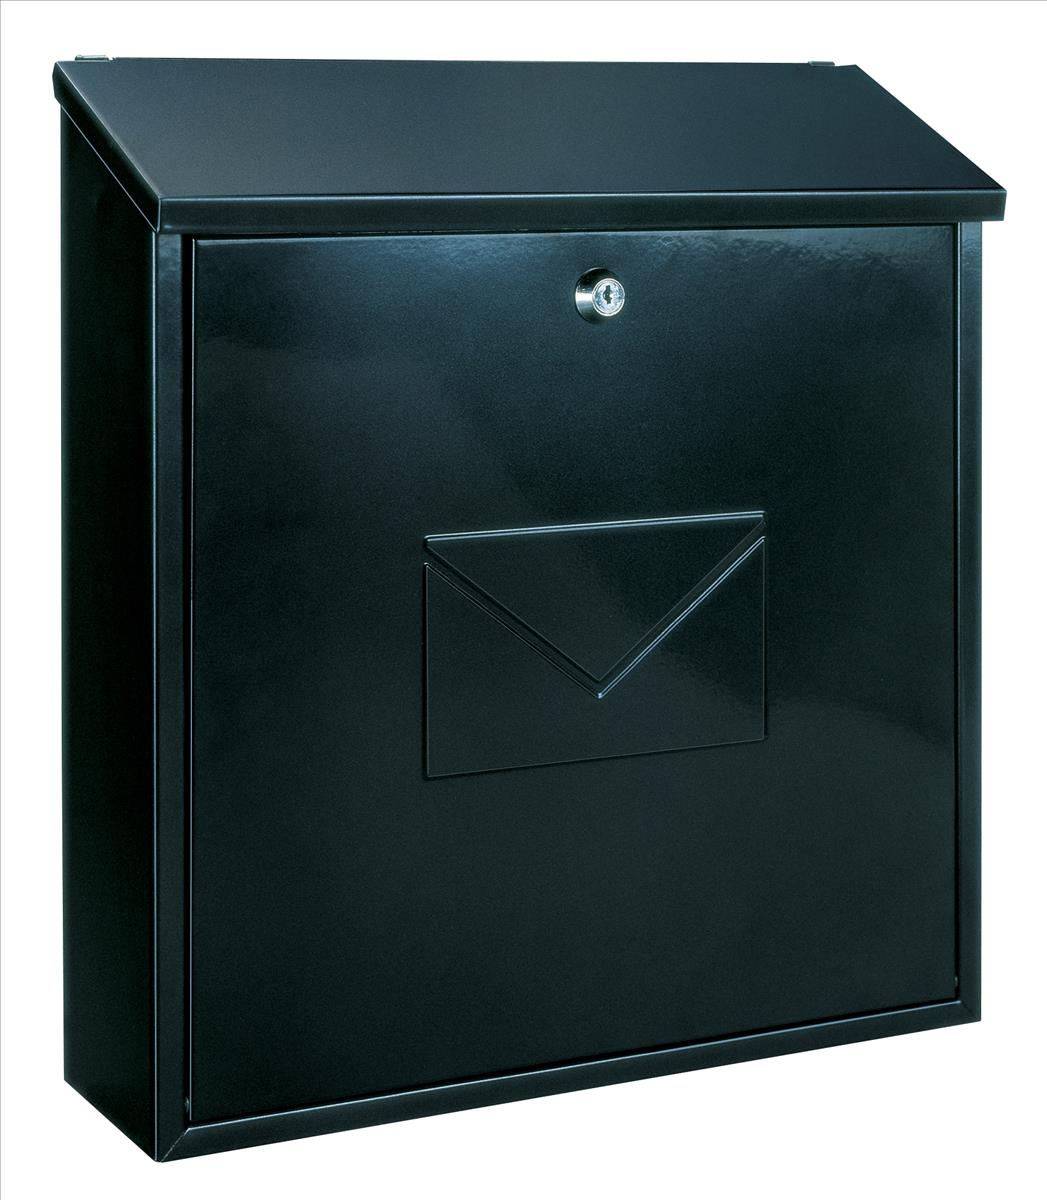 Image for Rottner Firenze Mailbox Steel Embossed 360x30mm Opening W365xD115xH400mm Black Ref T03426